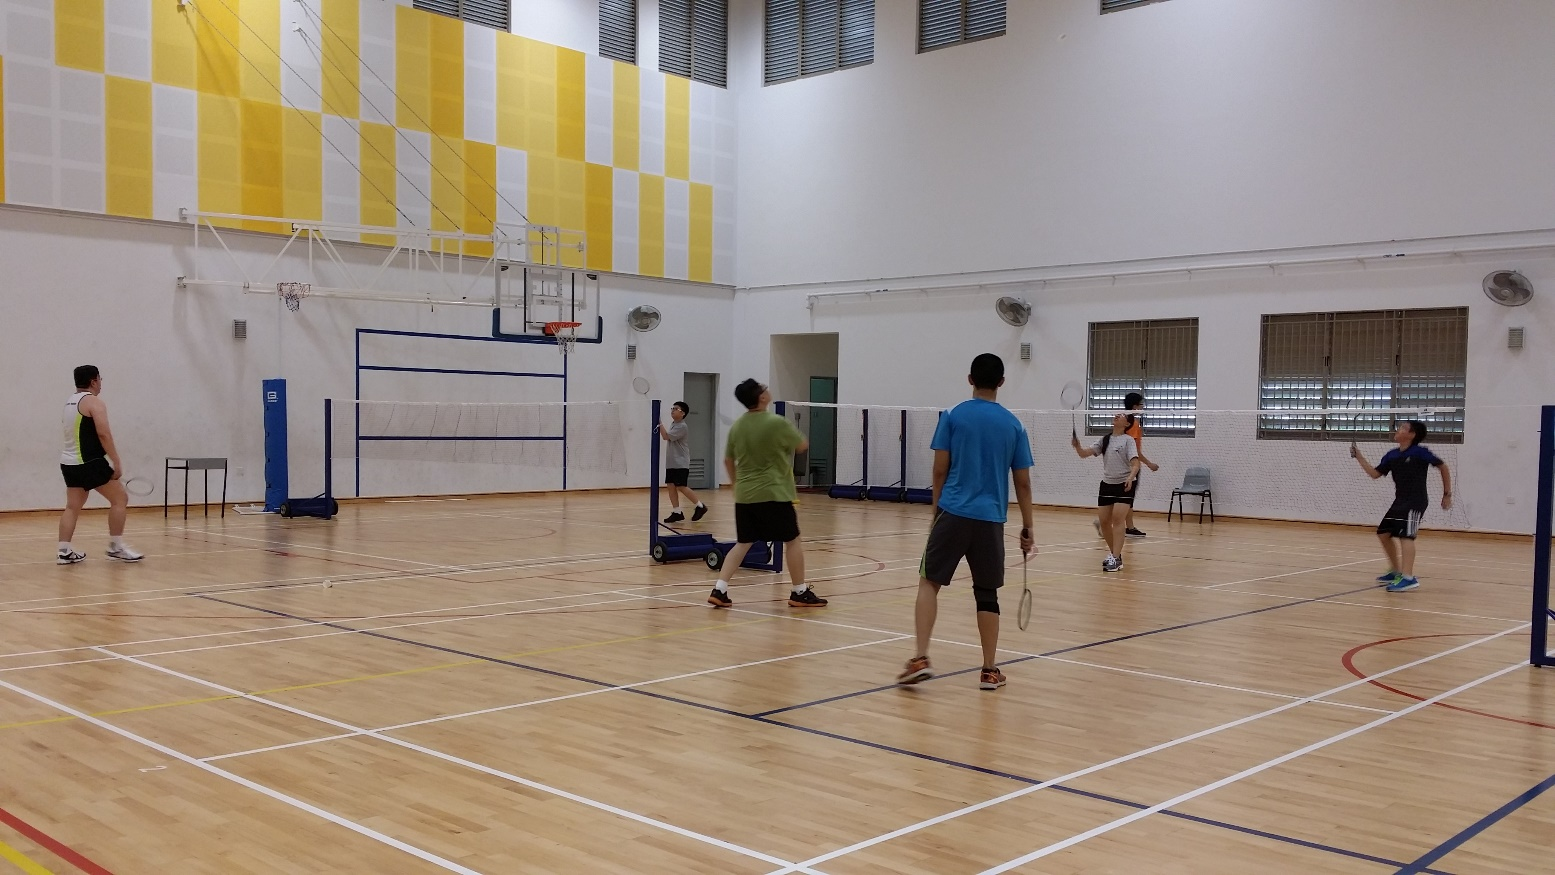 Keeping Active And Staying Healthy  Join Us For Our Badminton Games!